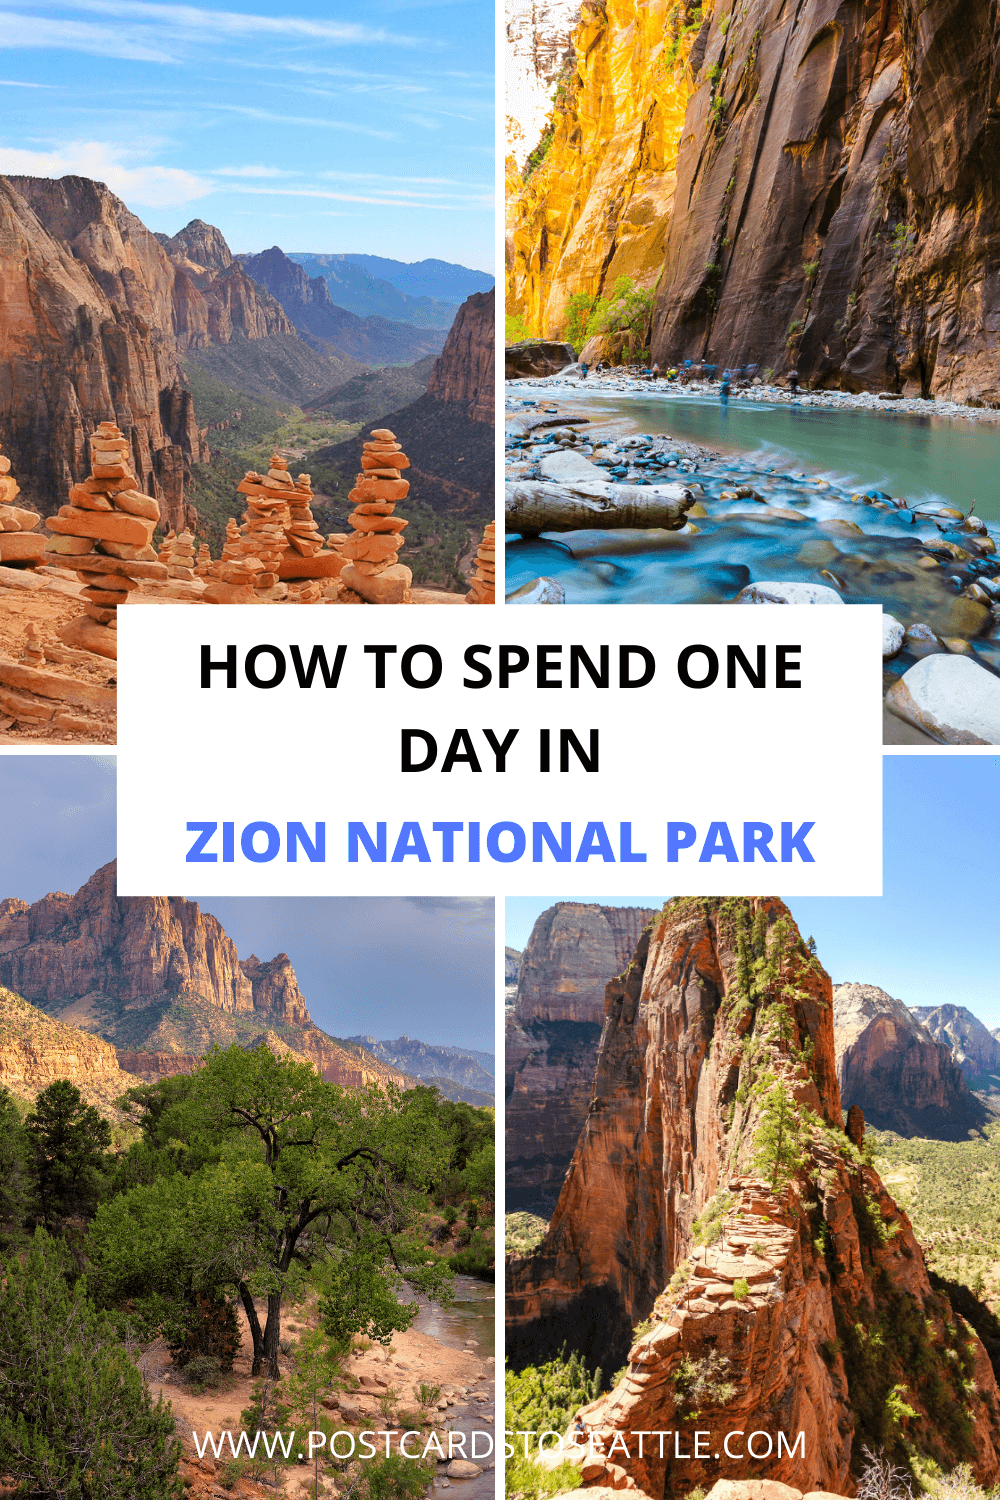 The Best Way to Spend One Day in Zion National Park